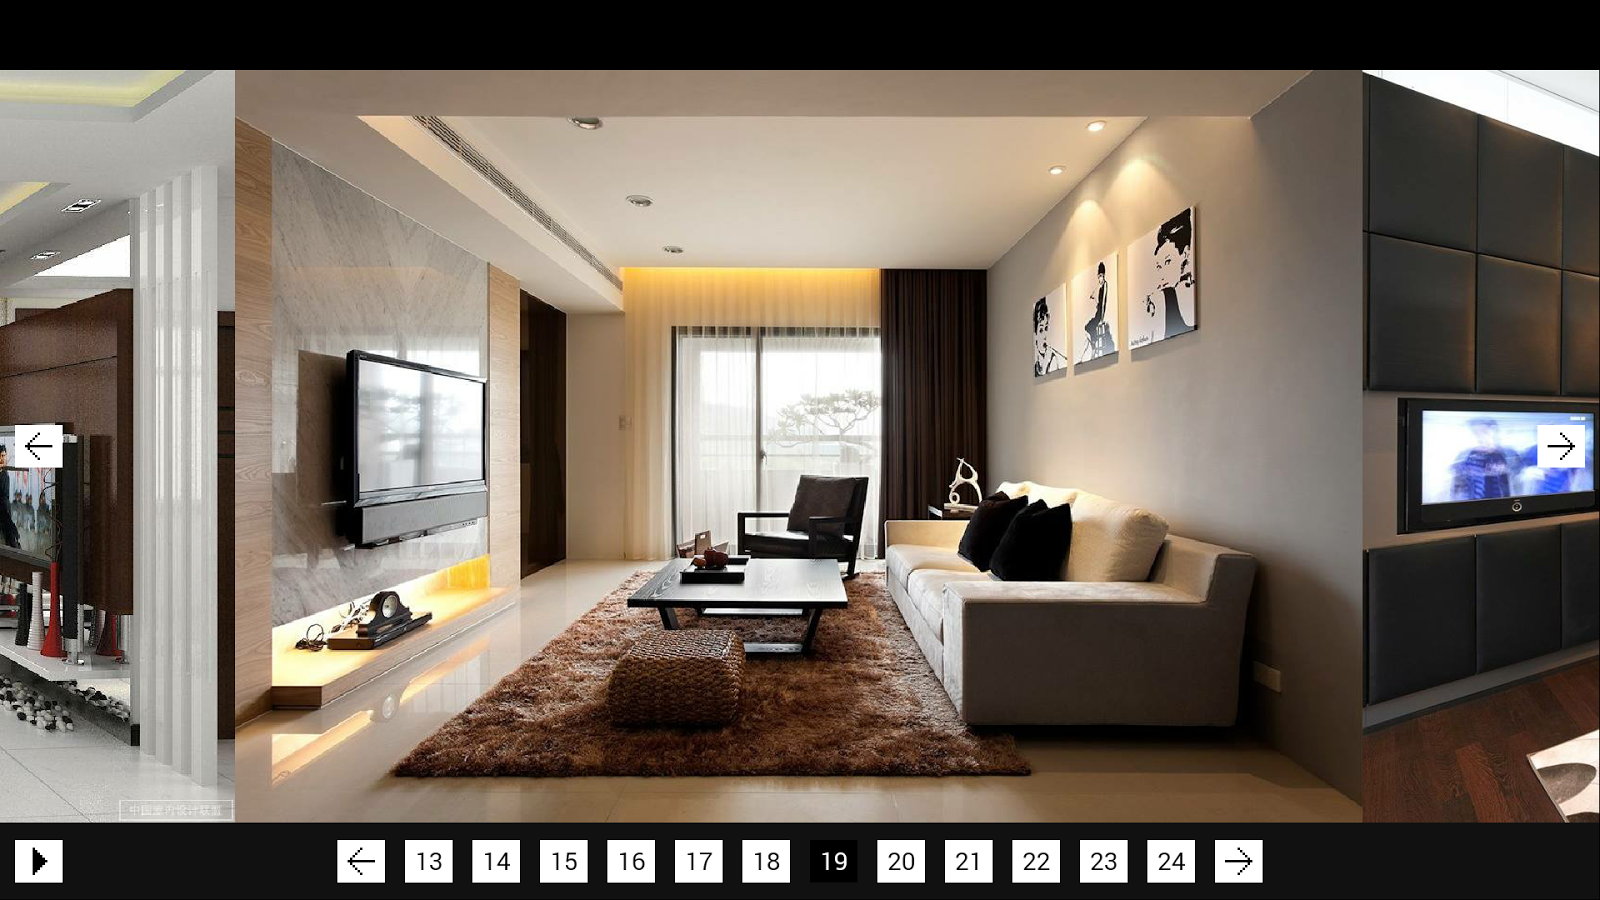 Home interior design android apps on google play for House design interior decorating